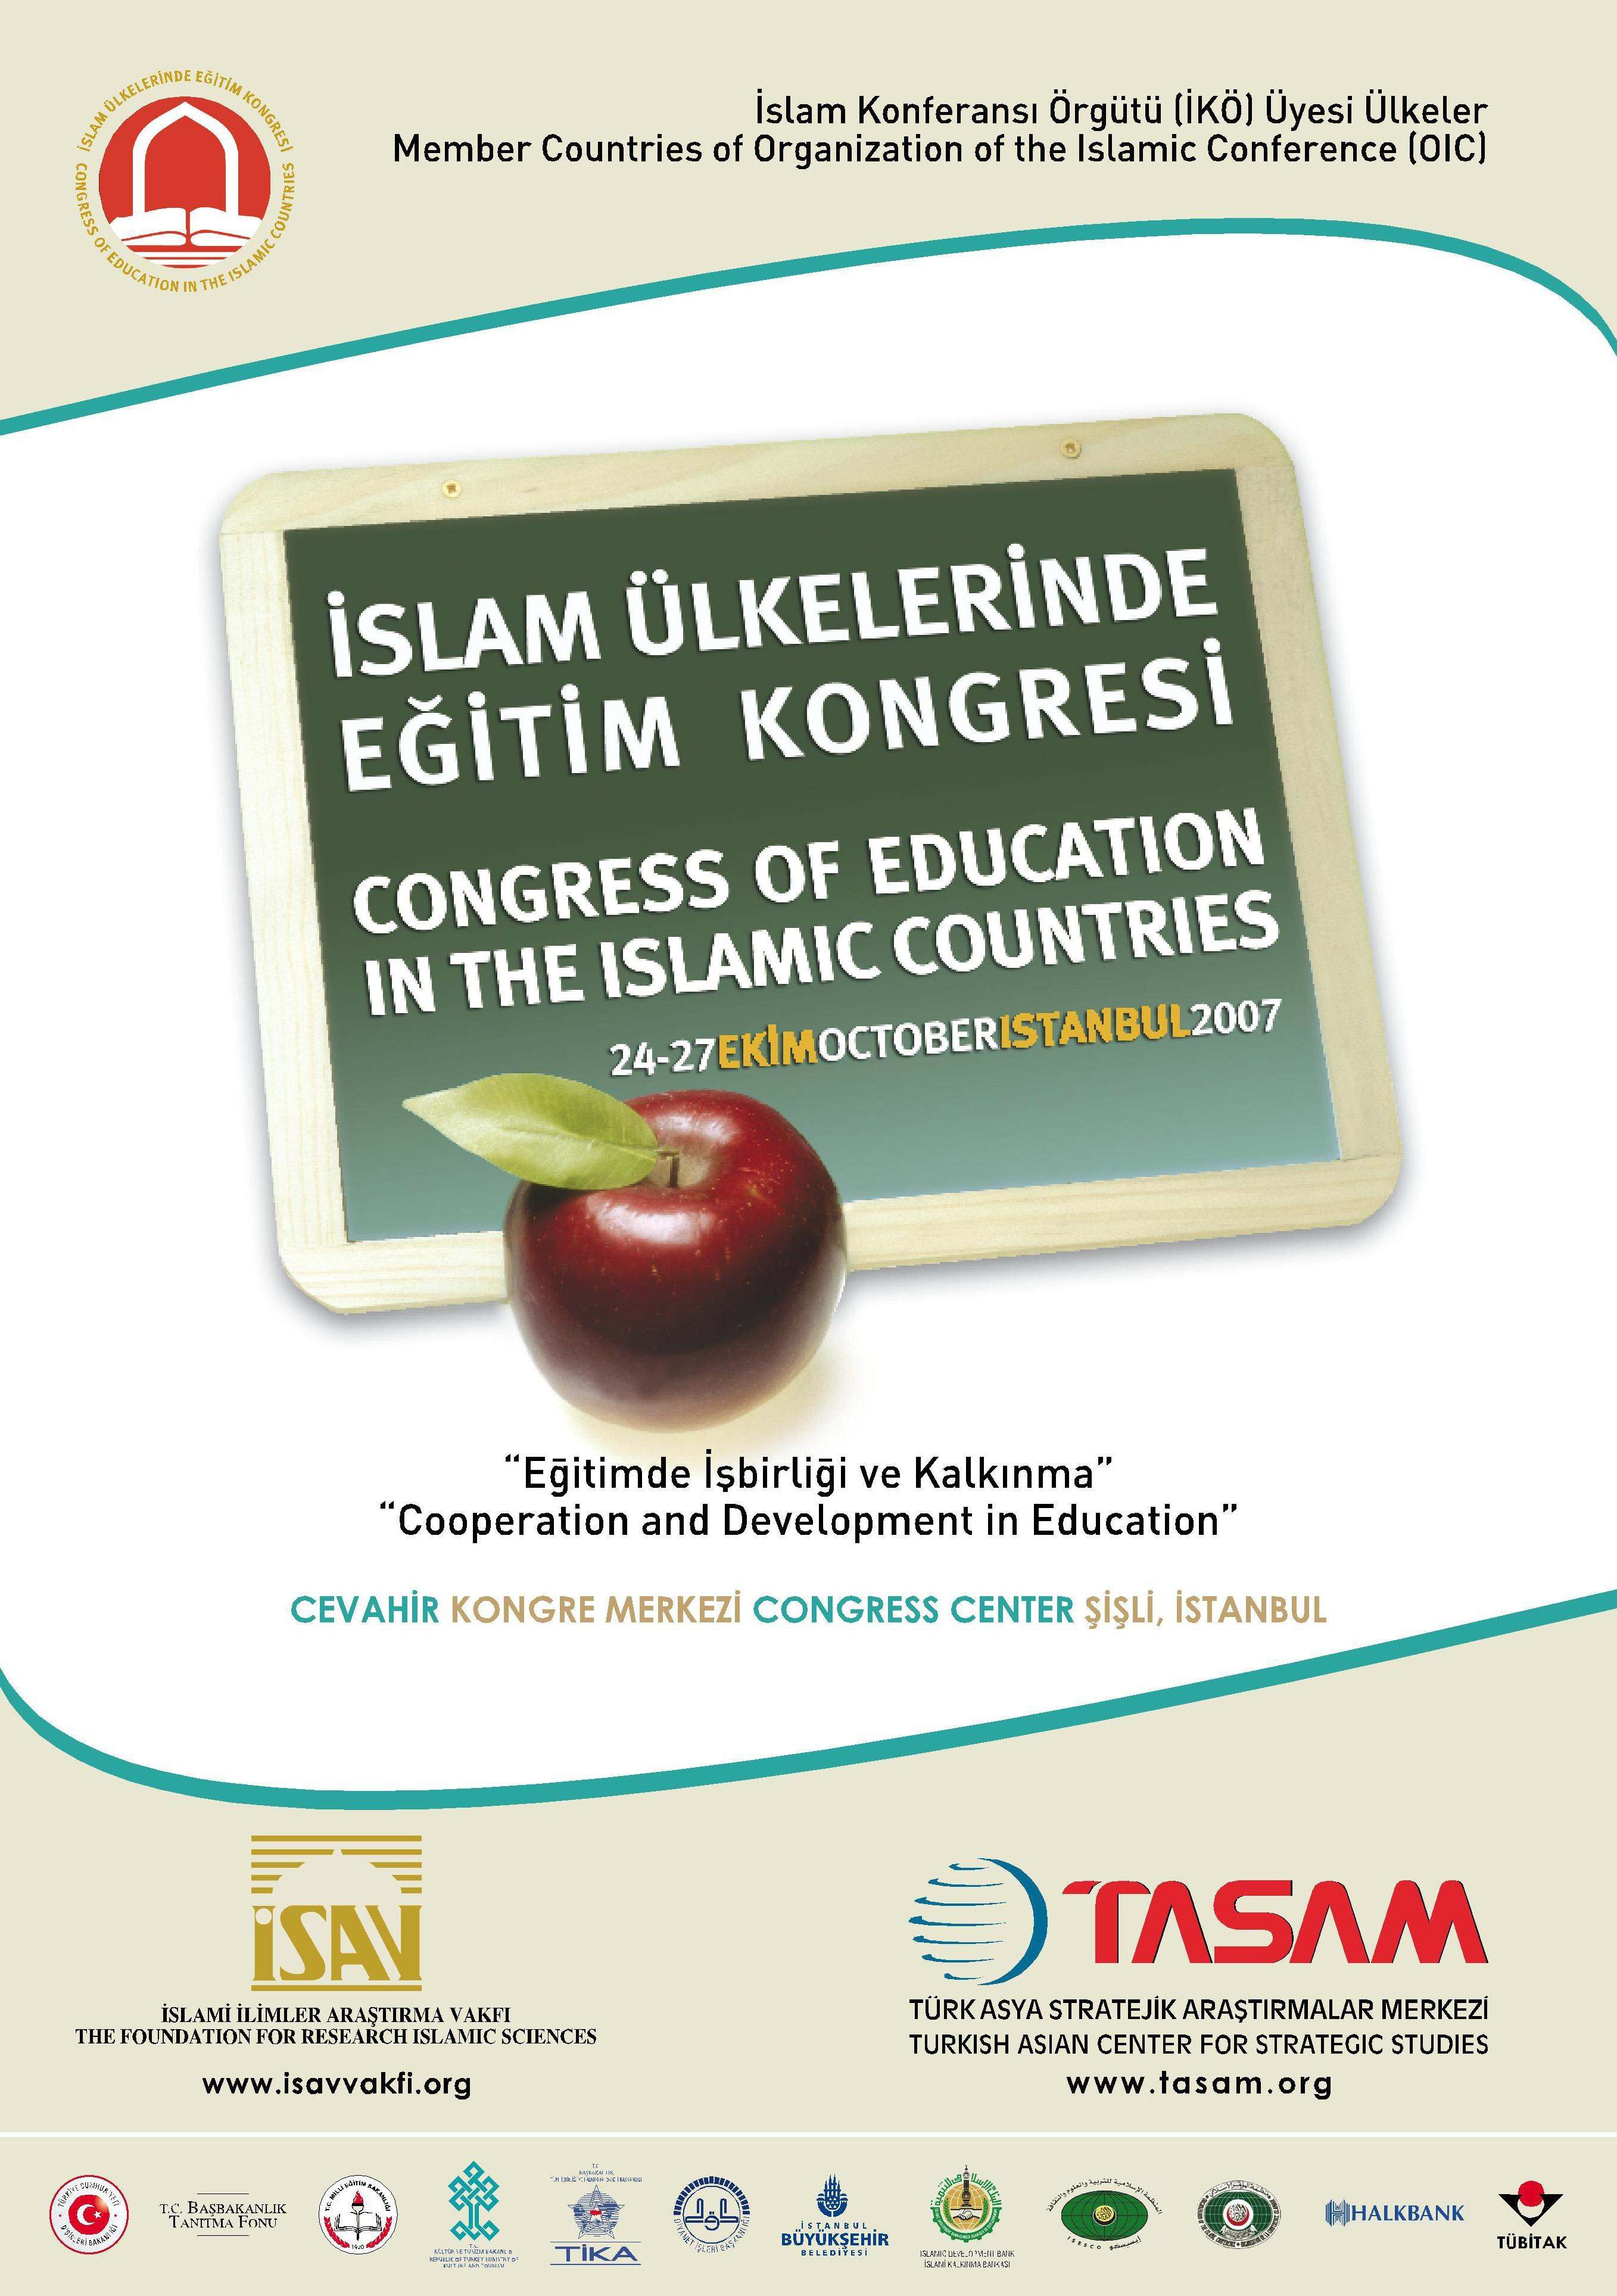 Congress of Education in Islamic Countries ( With OIC Member Countries )